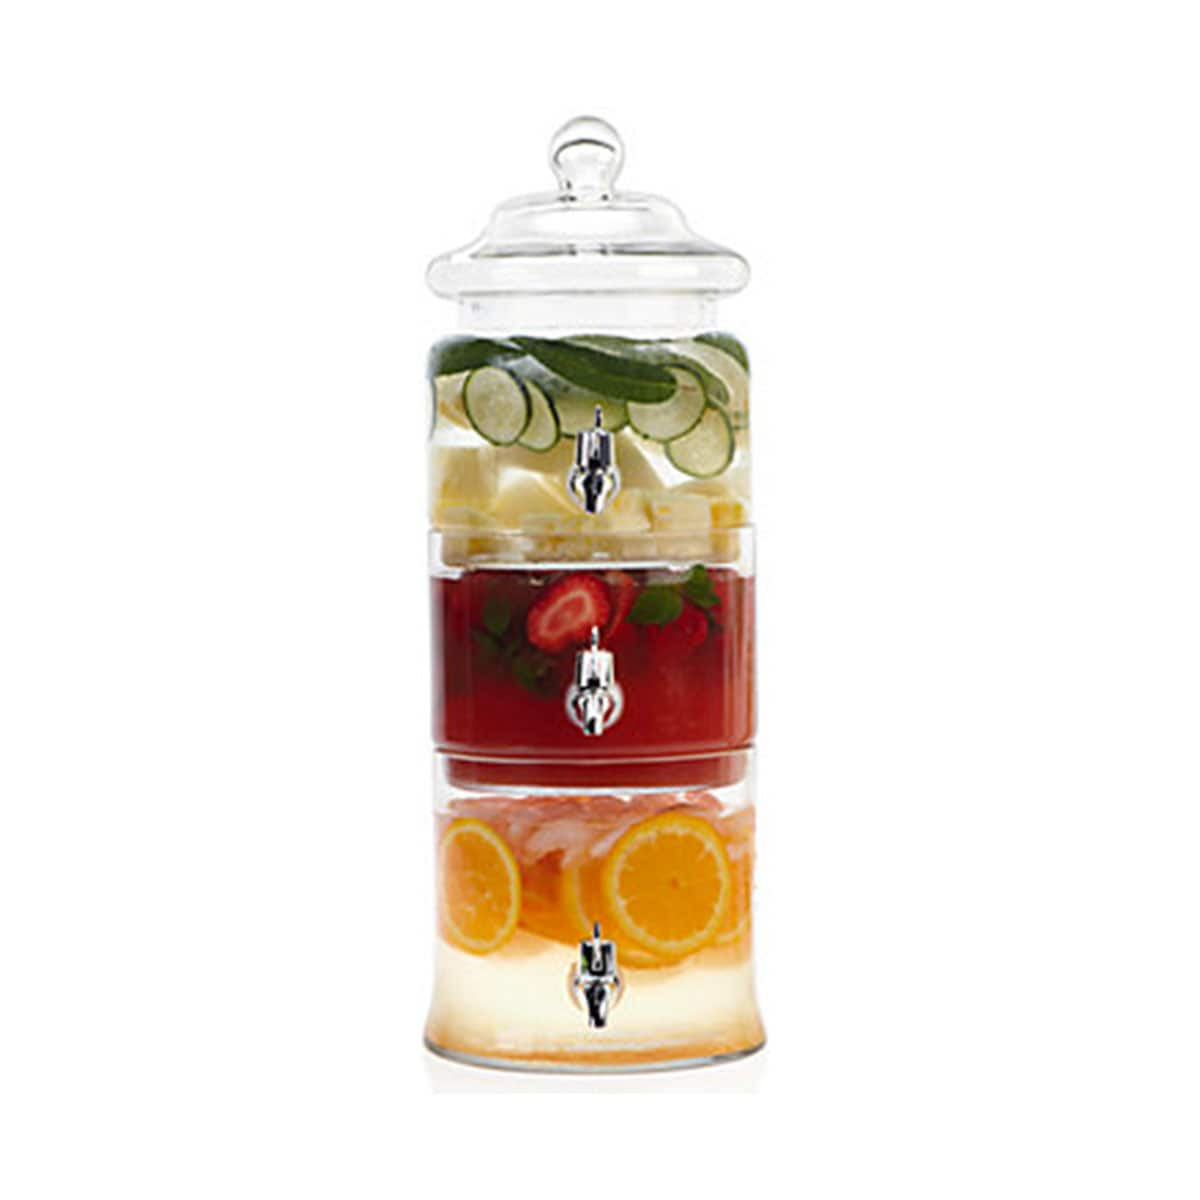 10 Beverage Dispensers to Gift to Your Favorite Party Host: gallery image 2